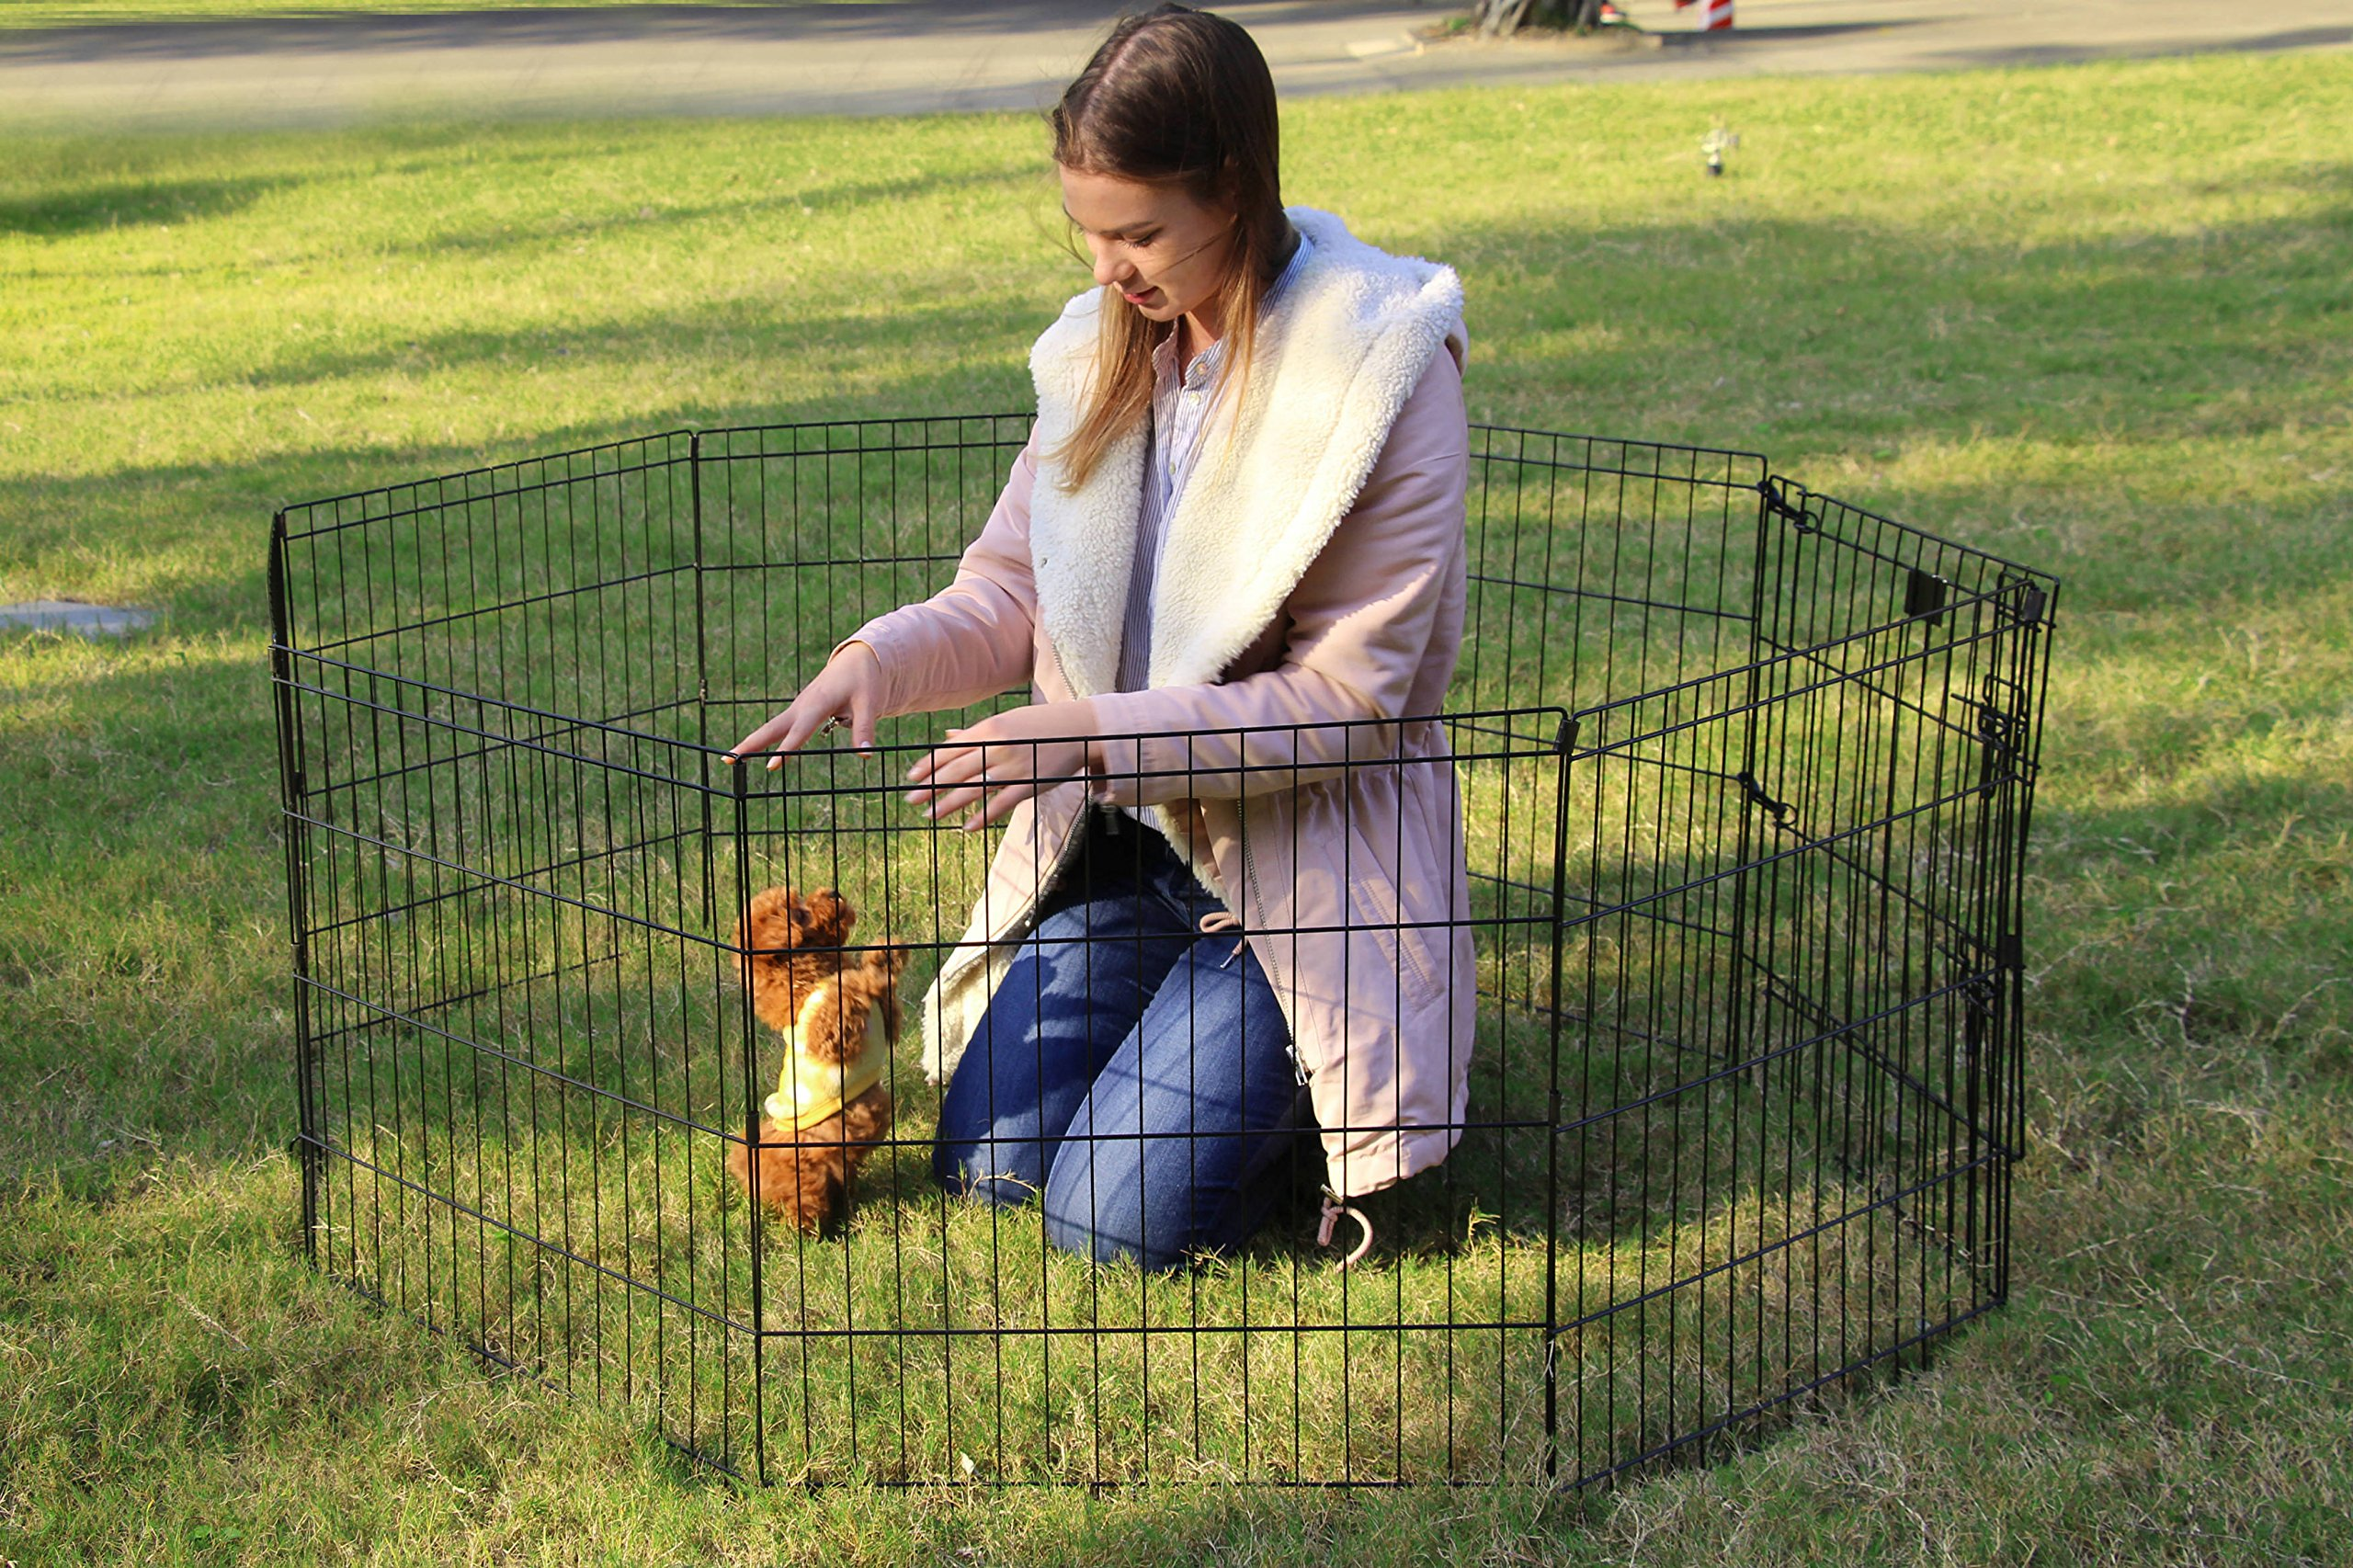 PEEKABOO Pet Playpen Dog Fence Foldable Exercise Pen Yard for Cats Rabbits Puppy Indoor Outdoor - 24'' Black by PEEKABOO (Image #3)